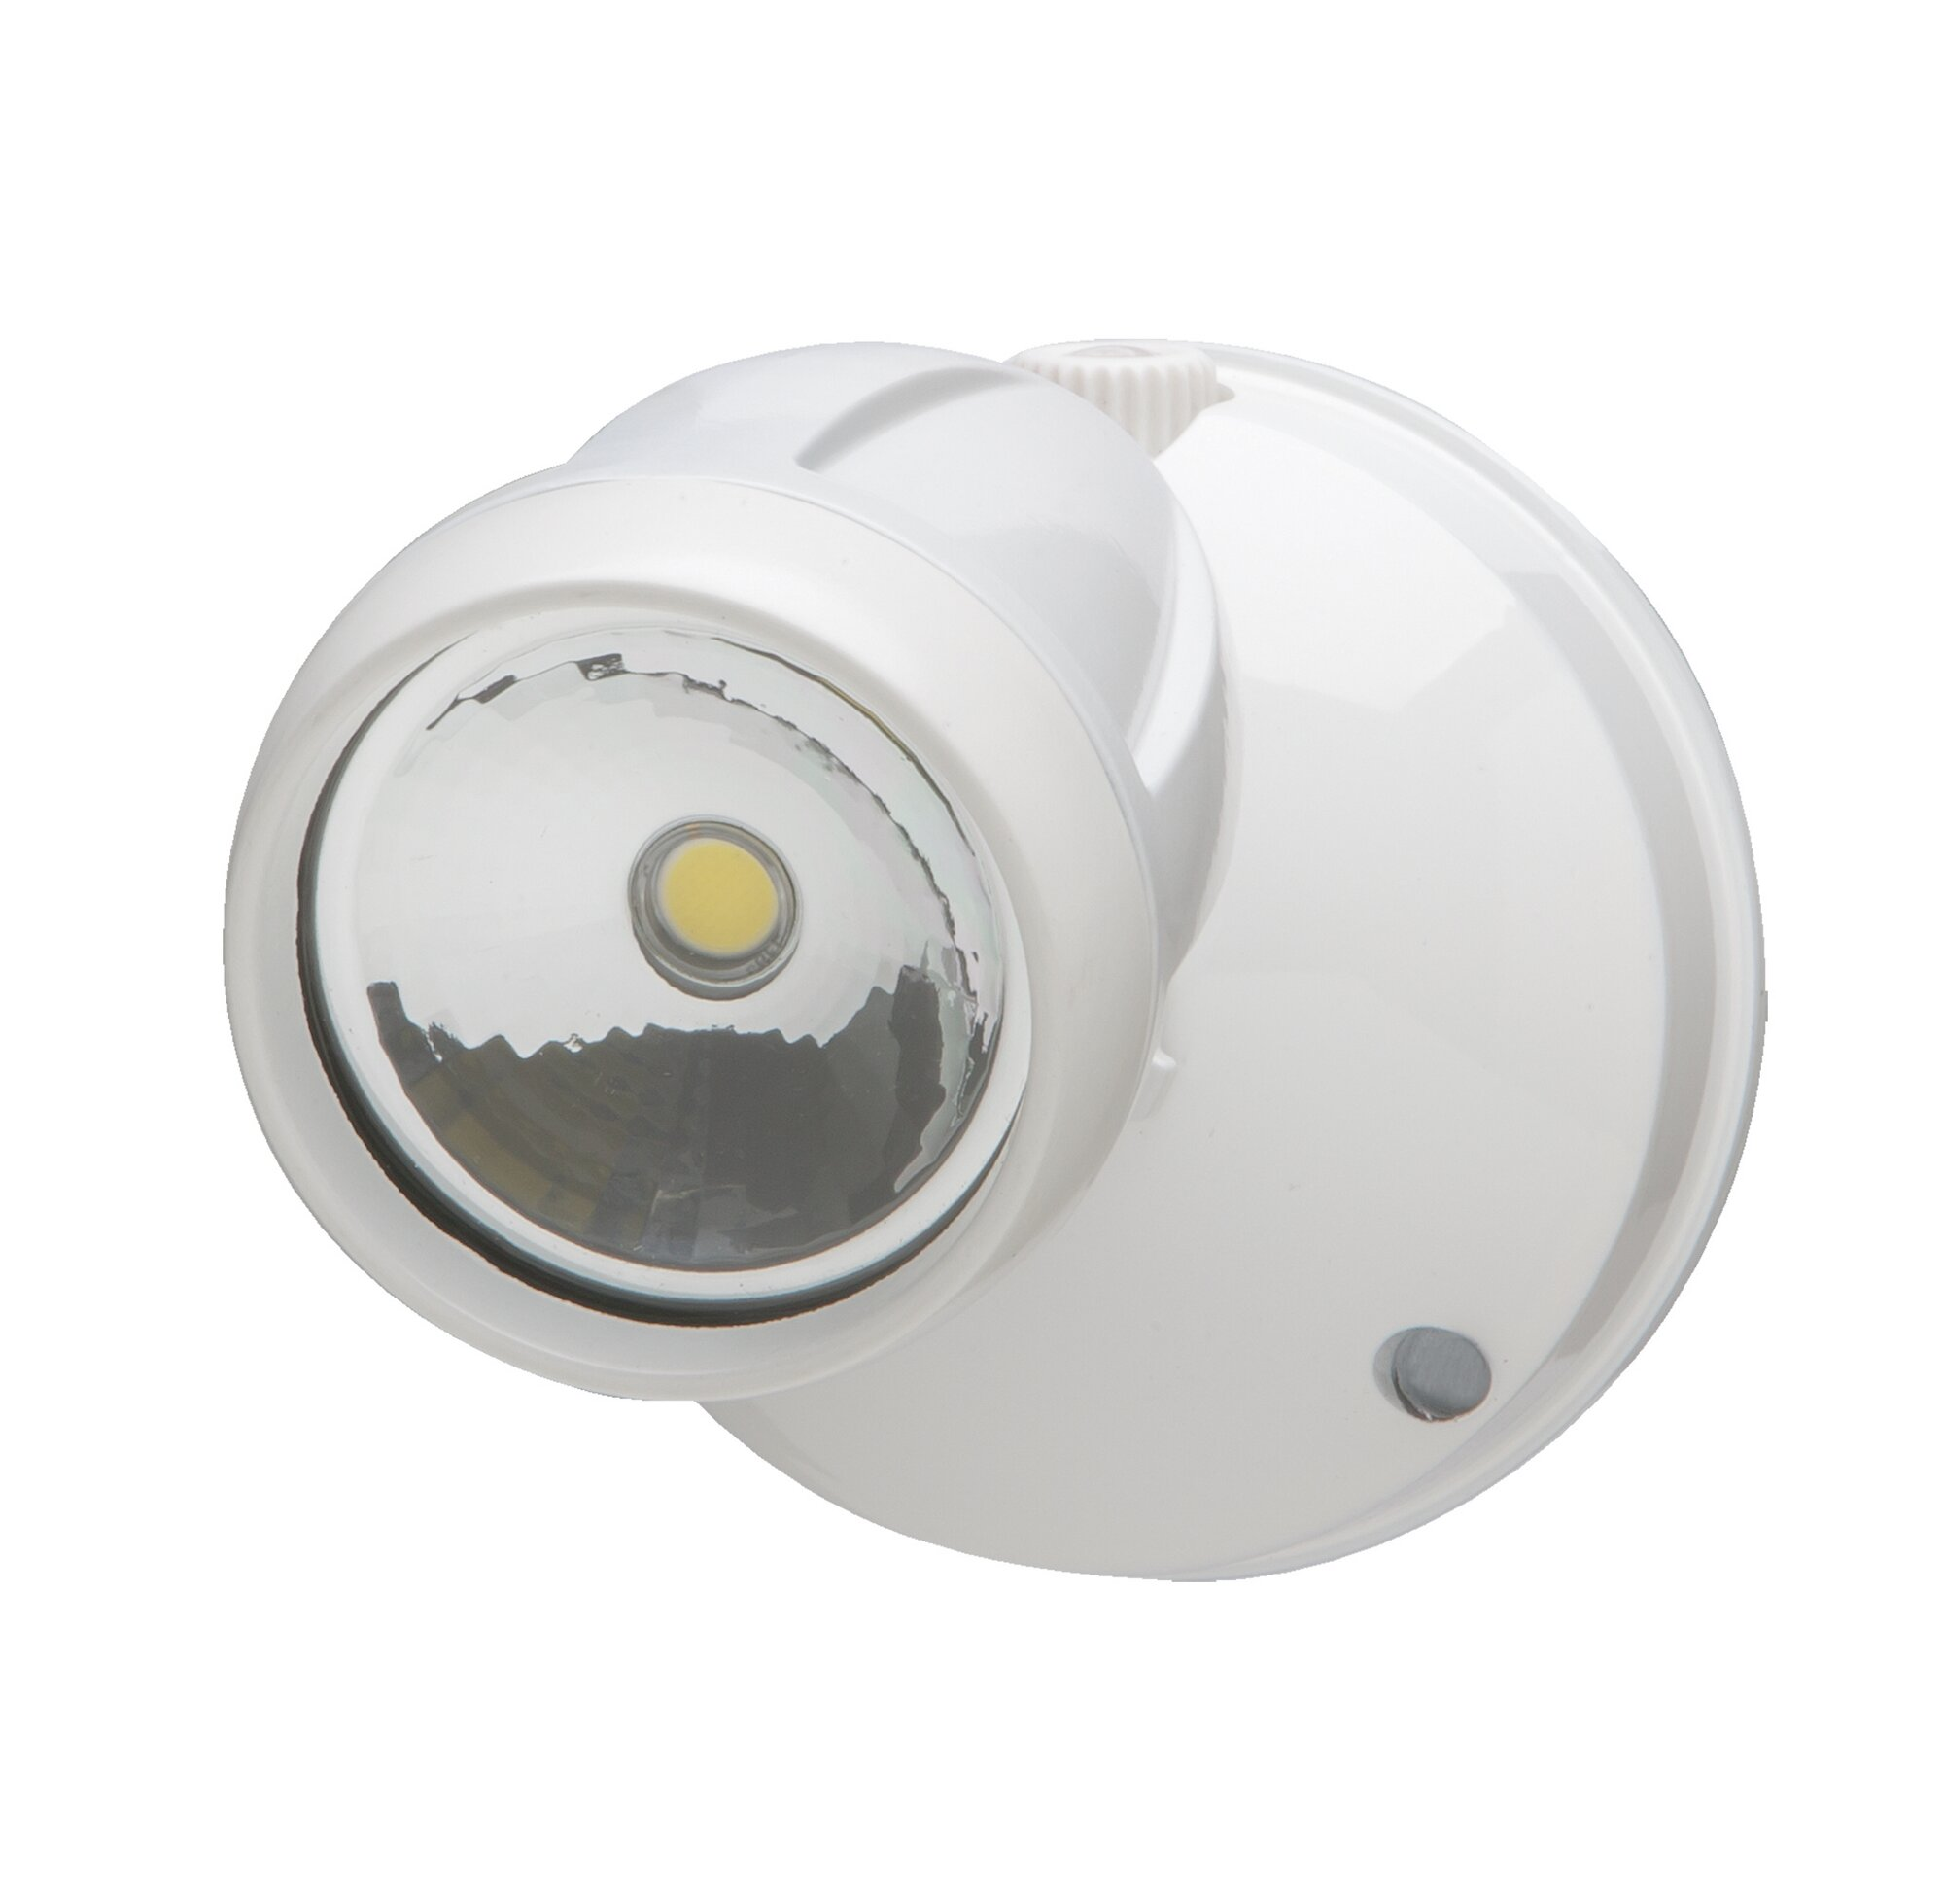 Automatic dusk to dawn light control - About Heath Zenith Single Head Led Automatic Dusk To Dawn Flood Light